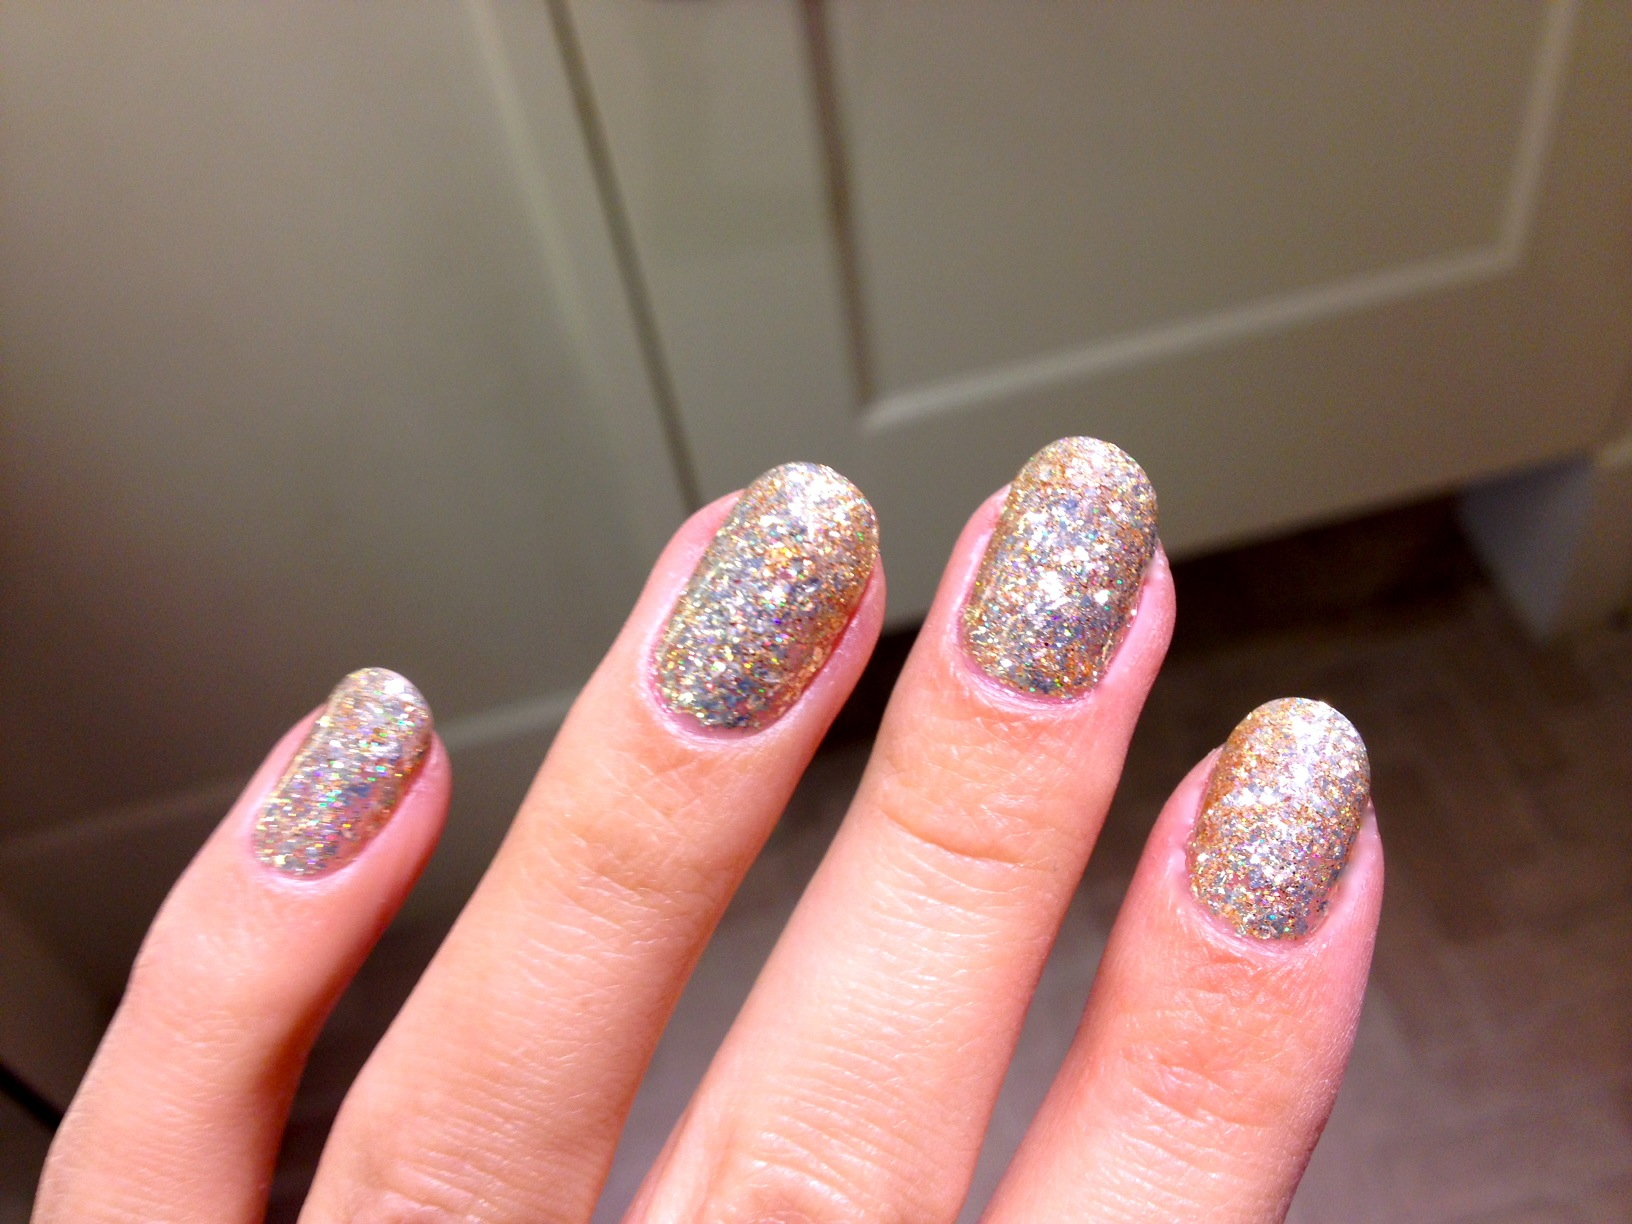 The Oh So Glam Gold Glitter Gelicure Polishment